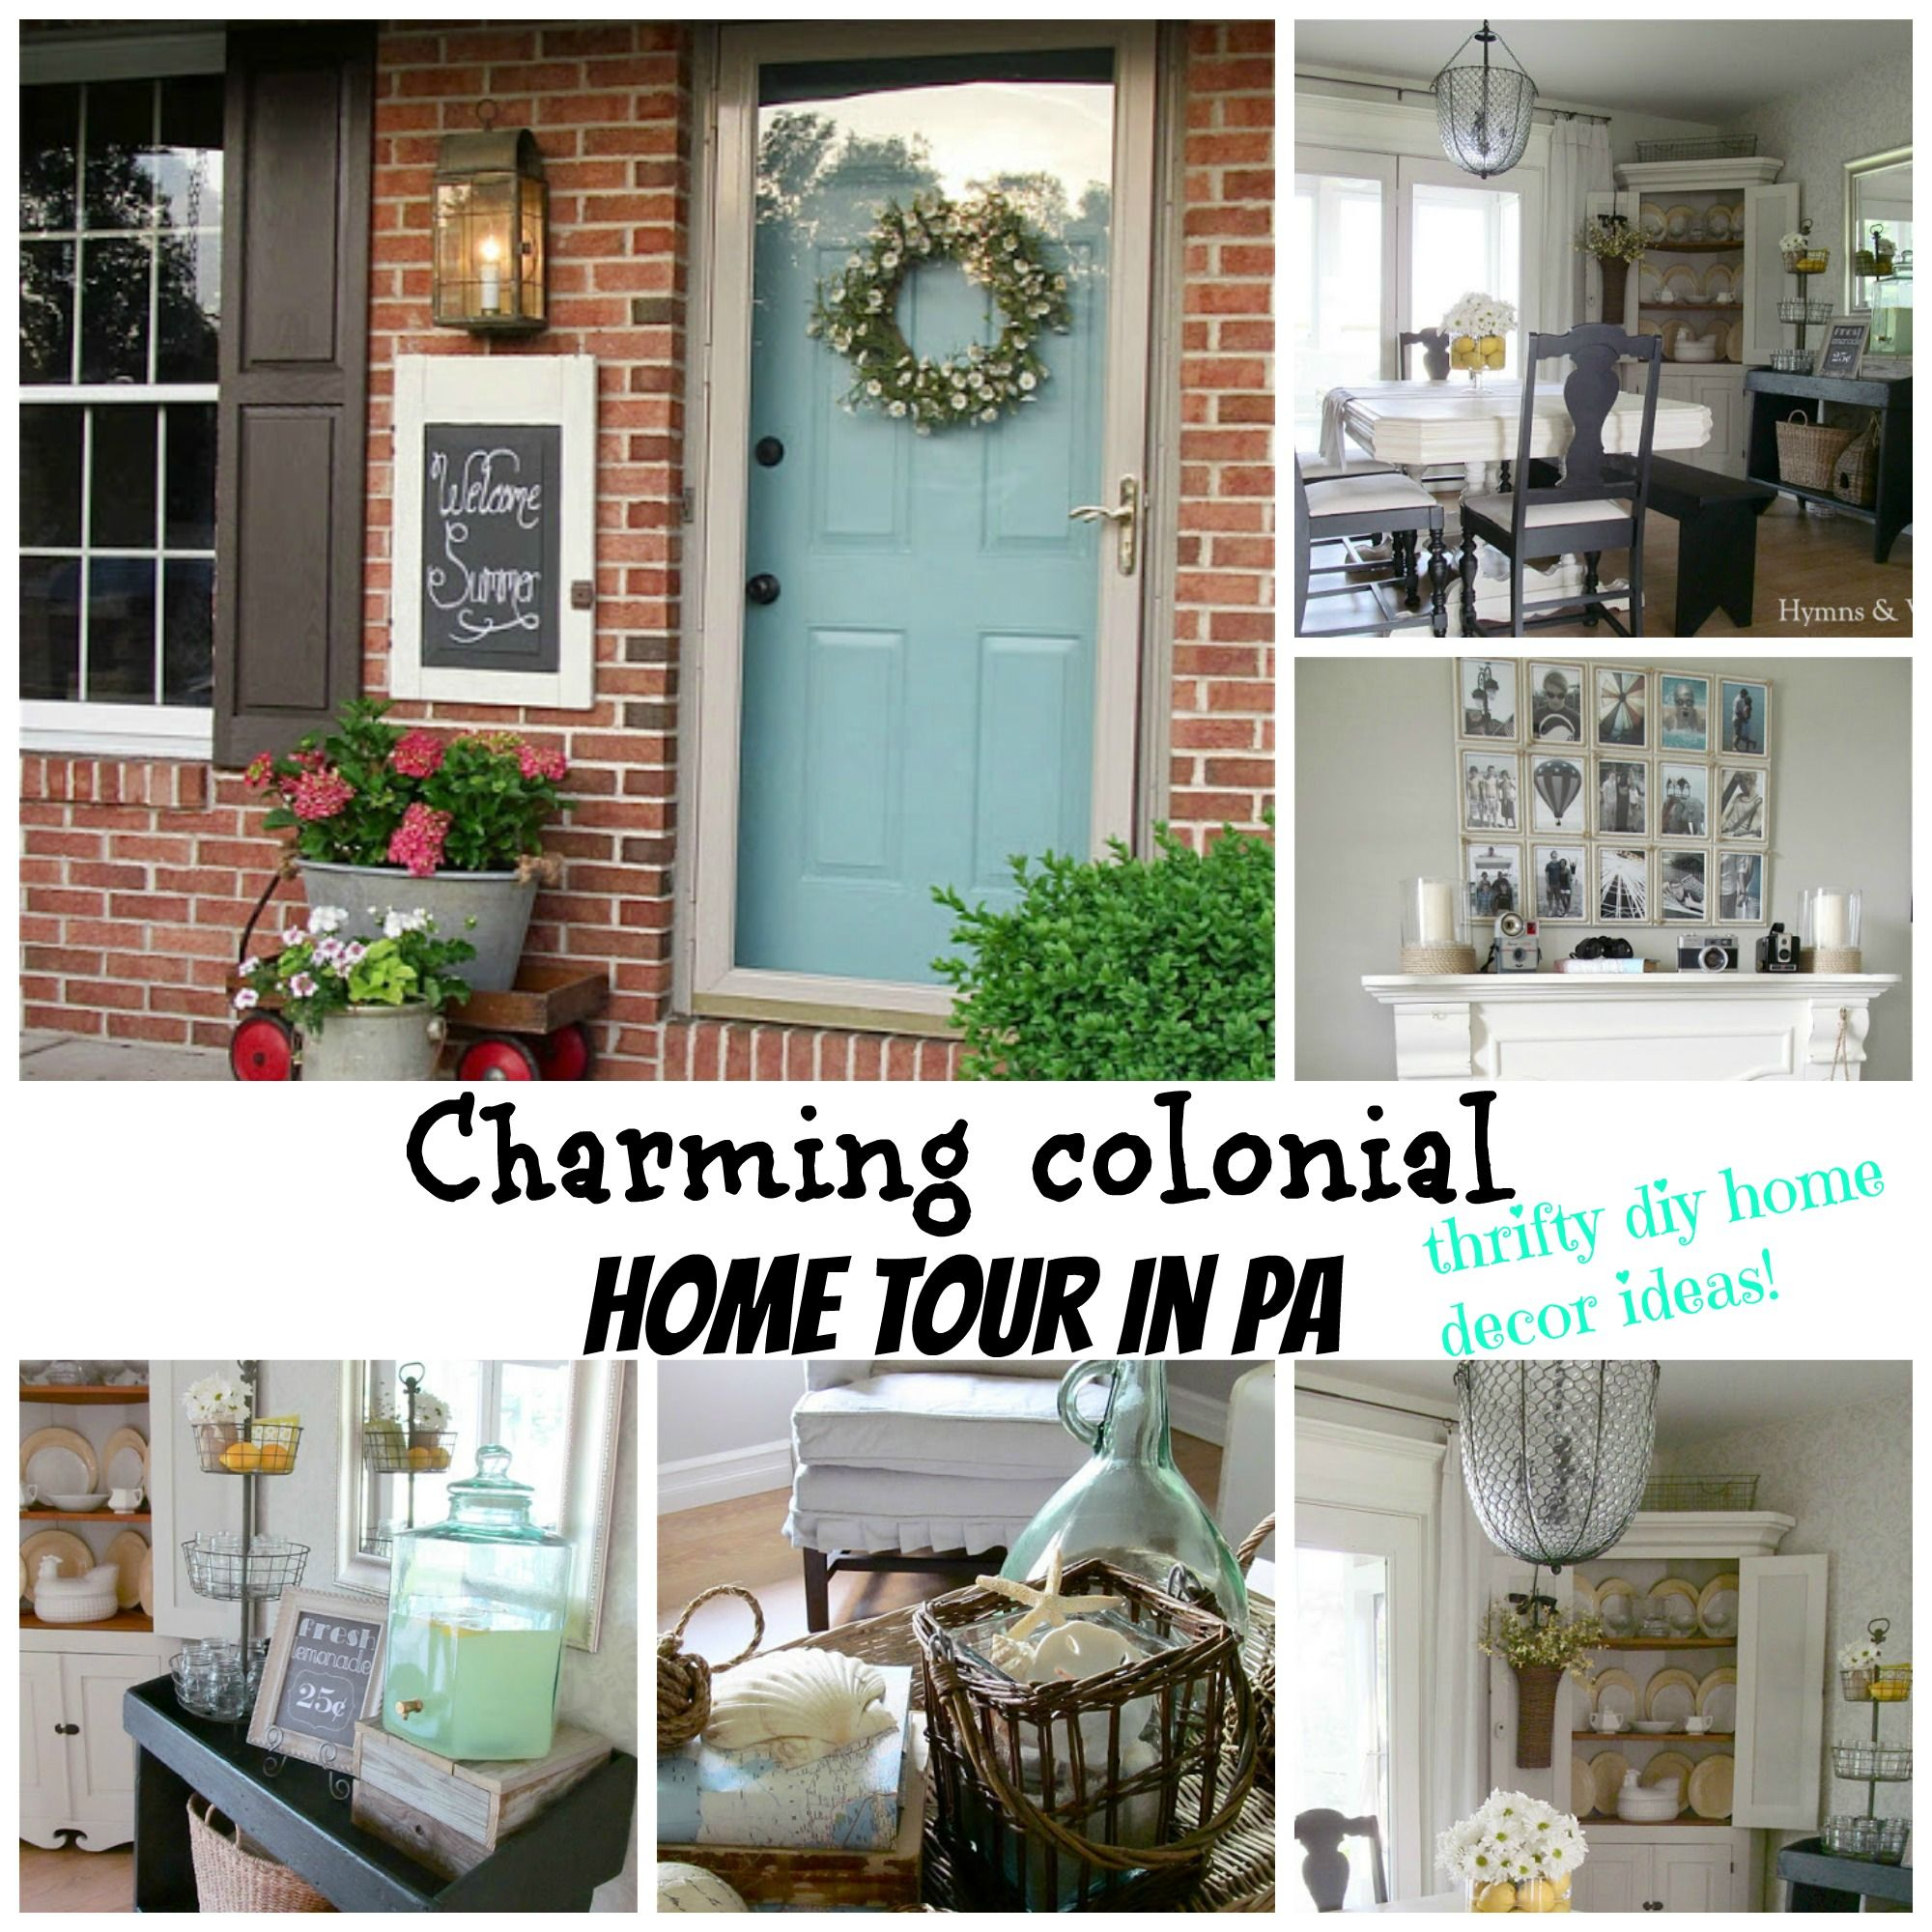 Thrifty Home Ideas Colonial home tour in pa colonial diy ideas and house charming colonial home tour in pa lots of thrifty home decor diy ideas workwithnaturefo